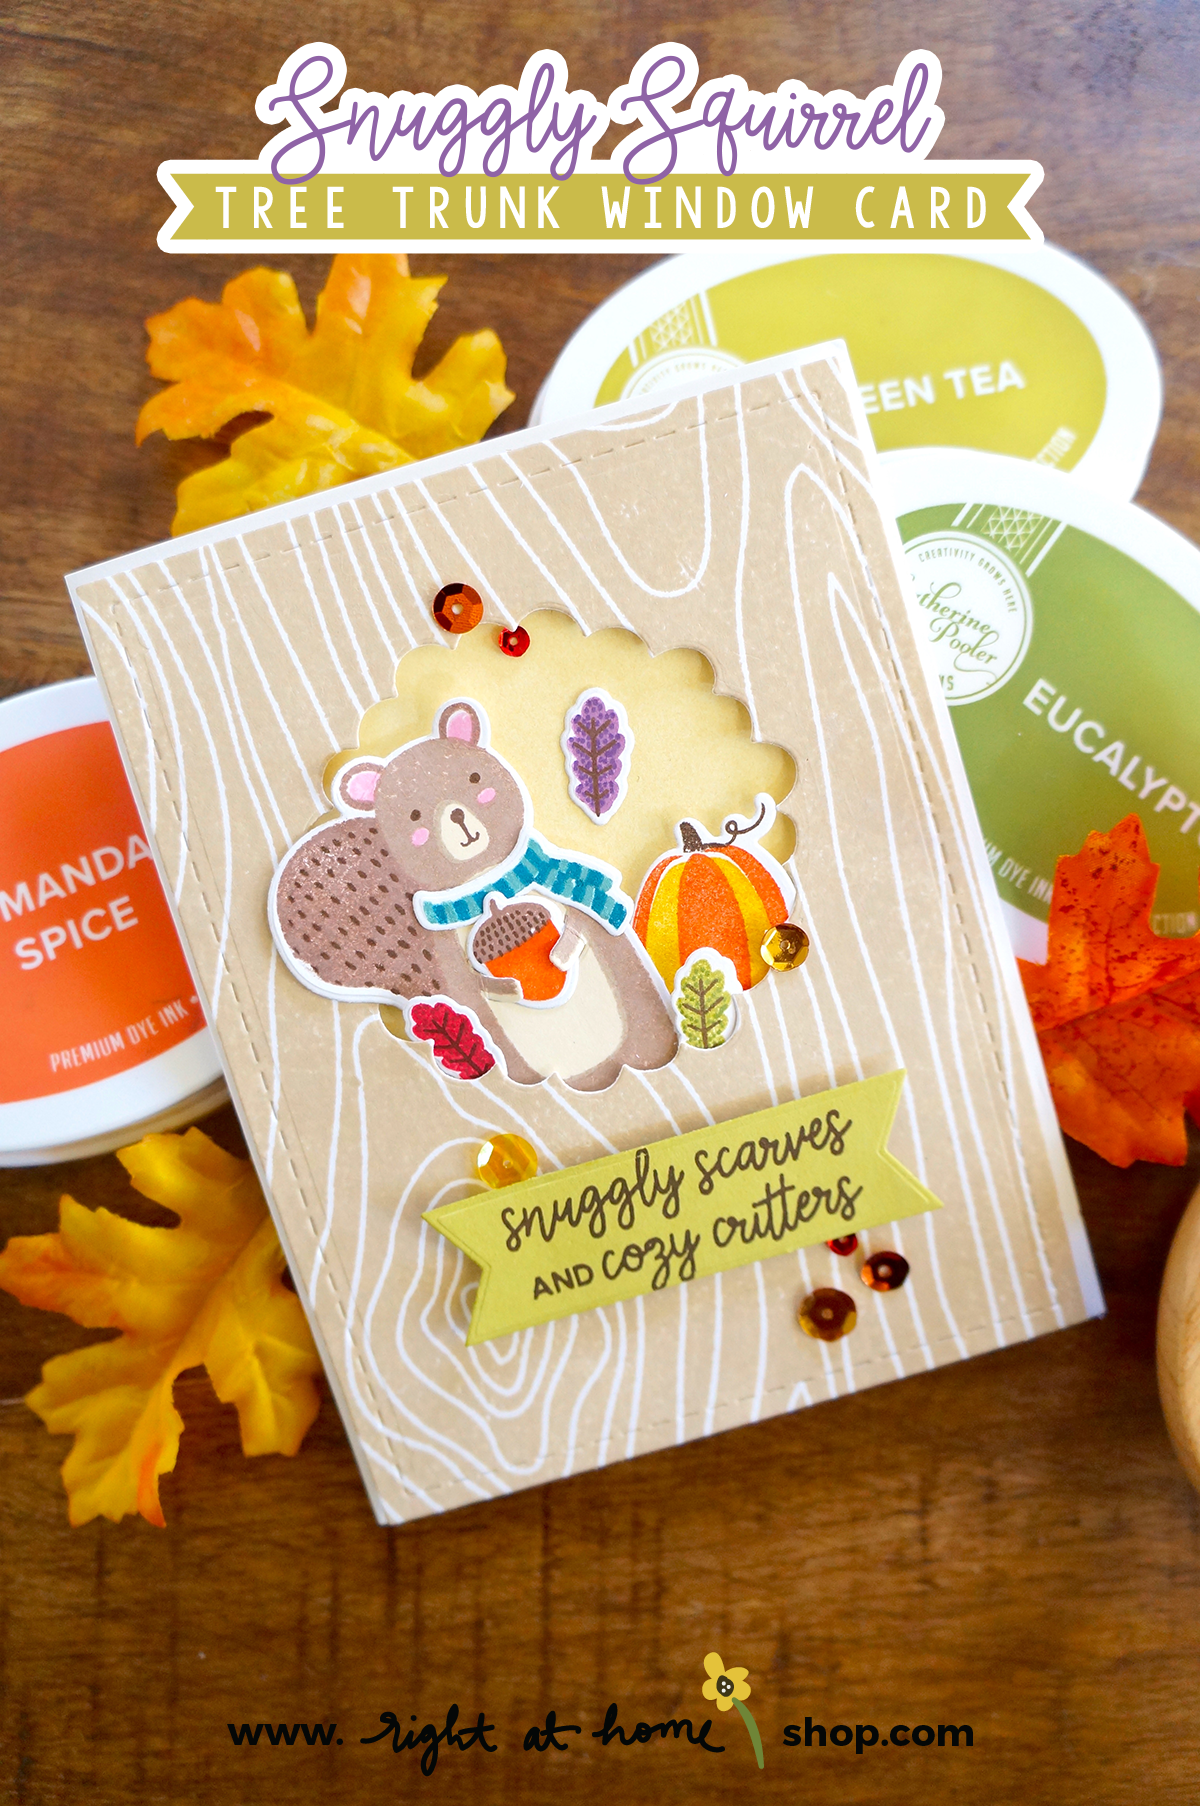 Snuggly Squirrel Tree Trunk Window Card // rightathomeshop.com/blog